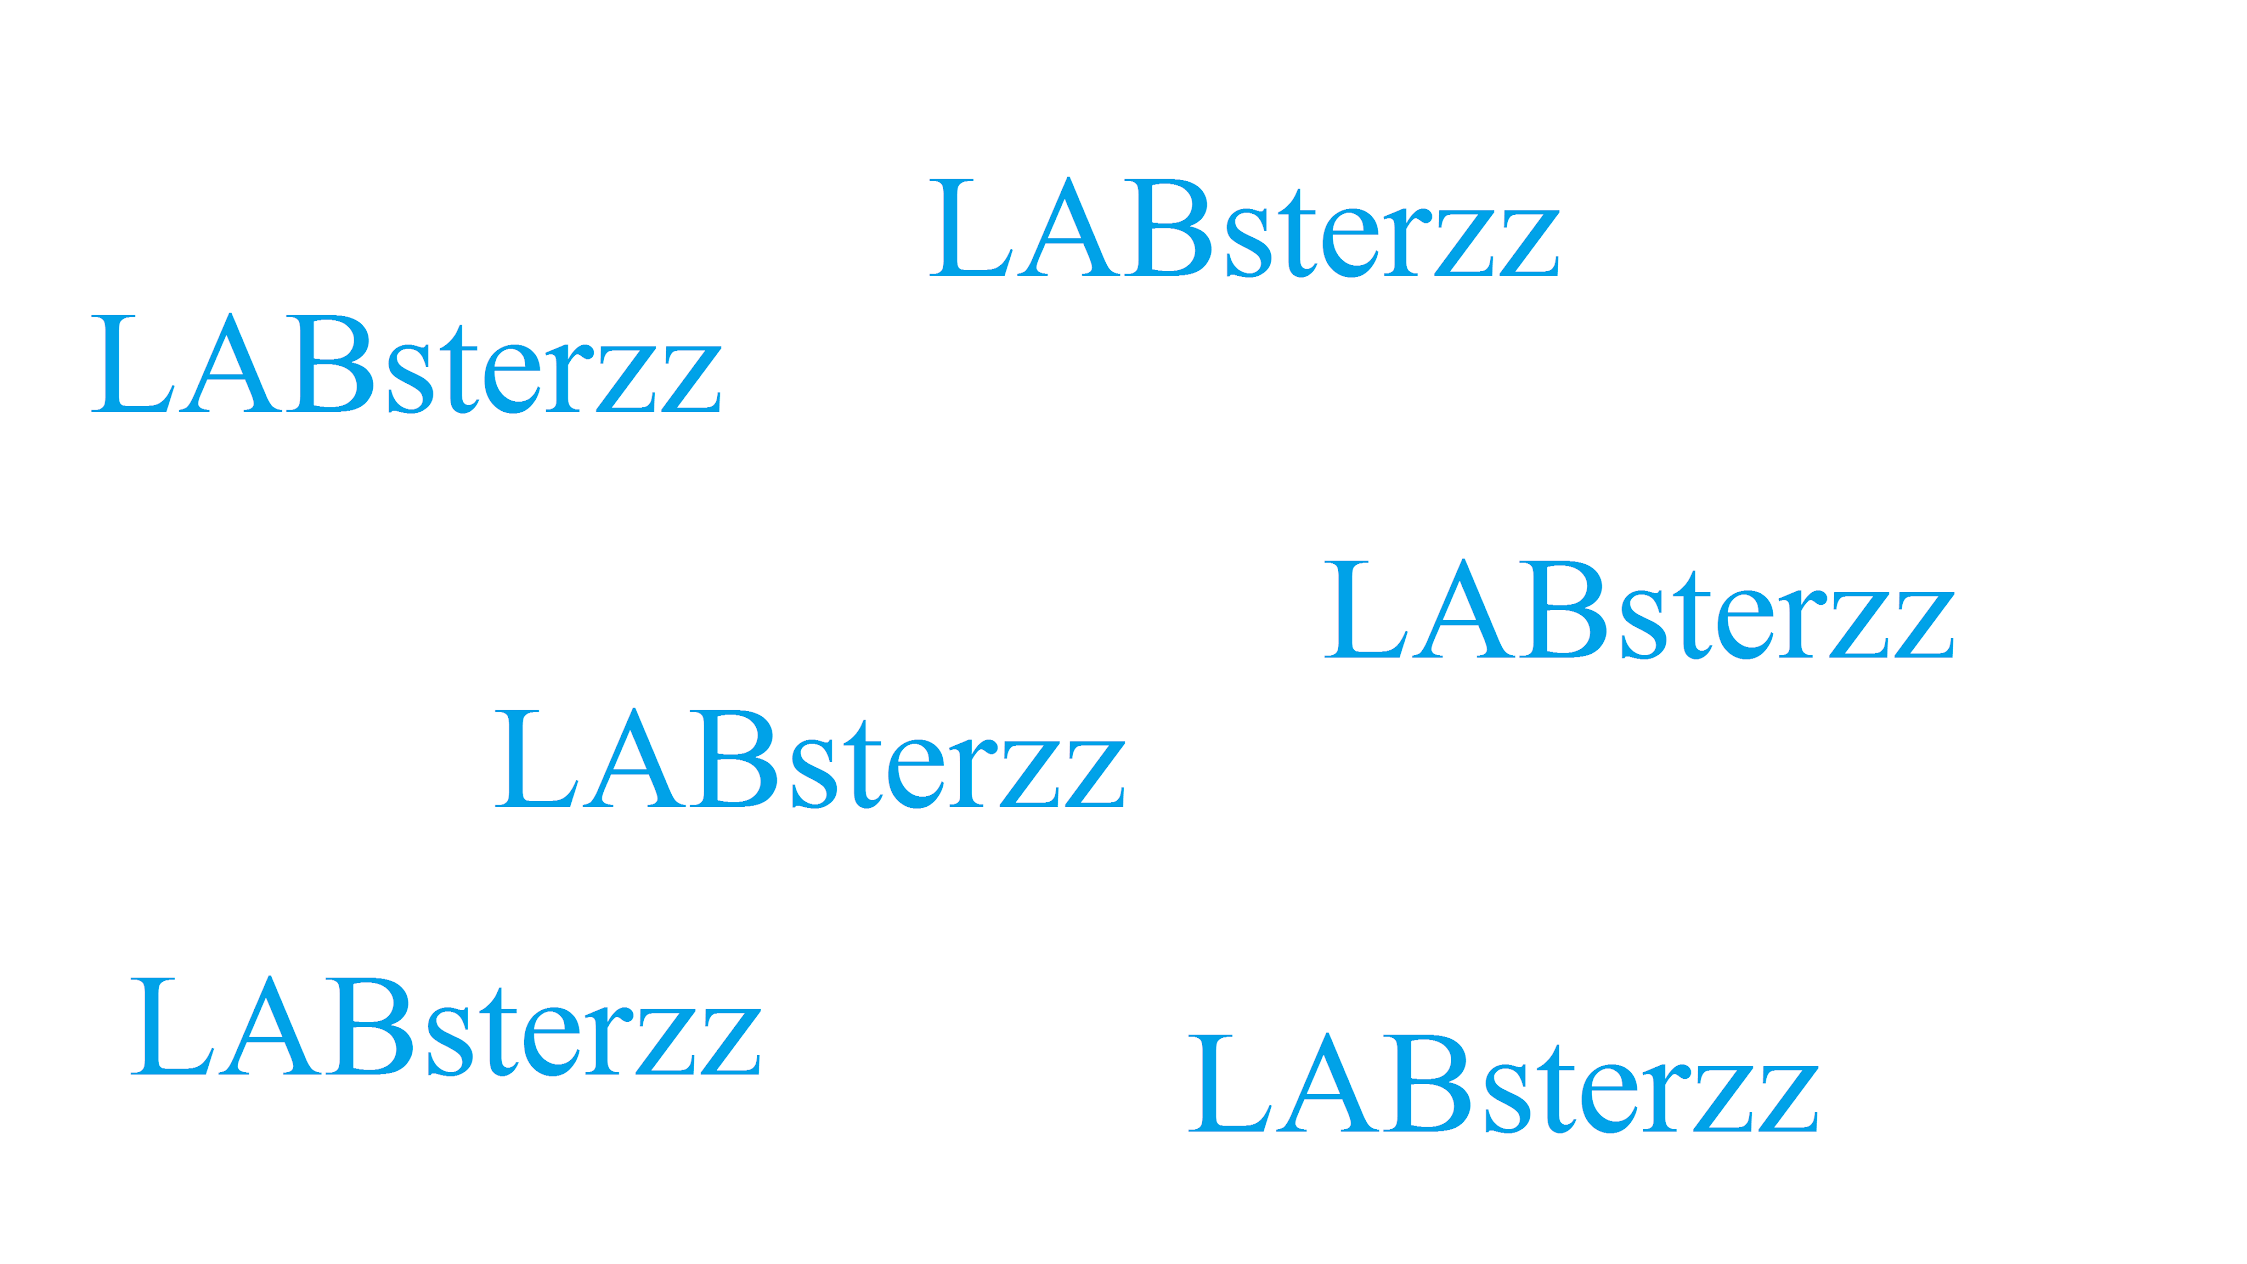 LABsterzz